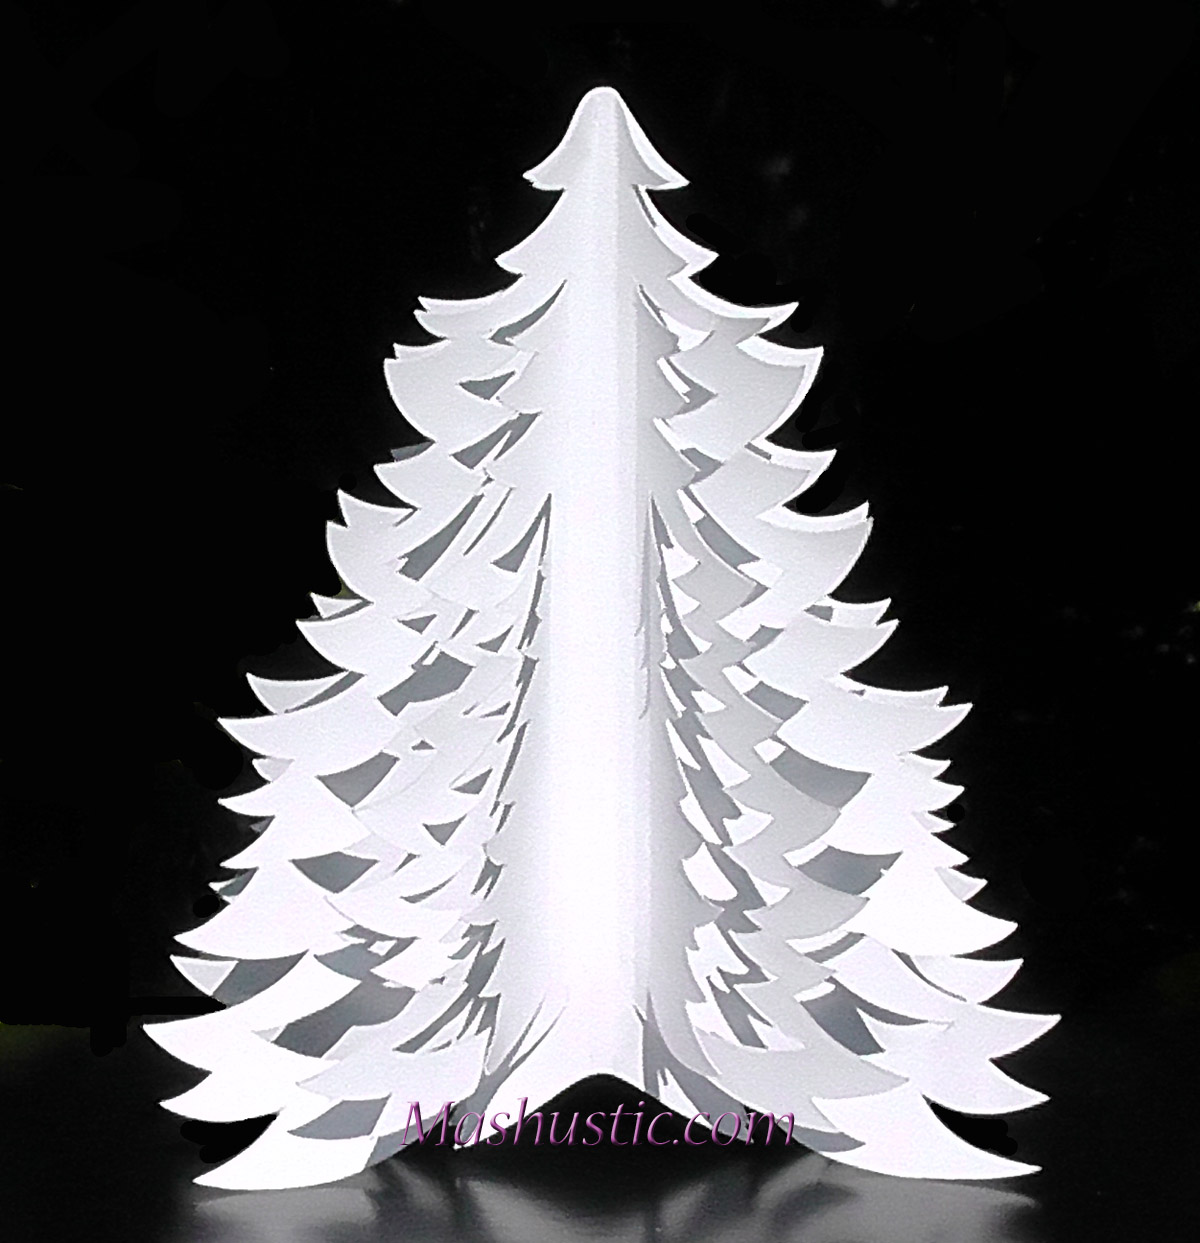 3d Paper Christmas Tree Template.How To Make 3d Paper Christmas Tree Mashustic Com